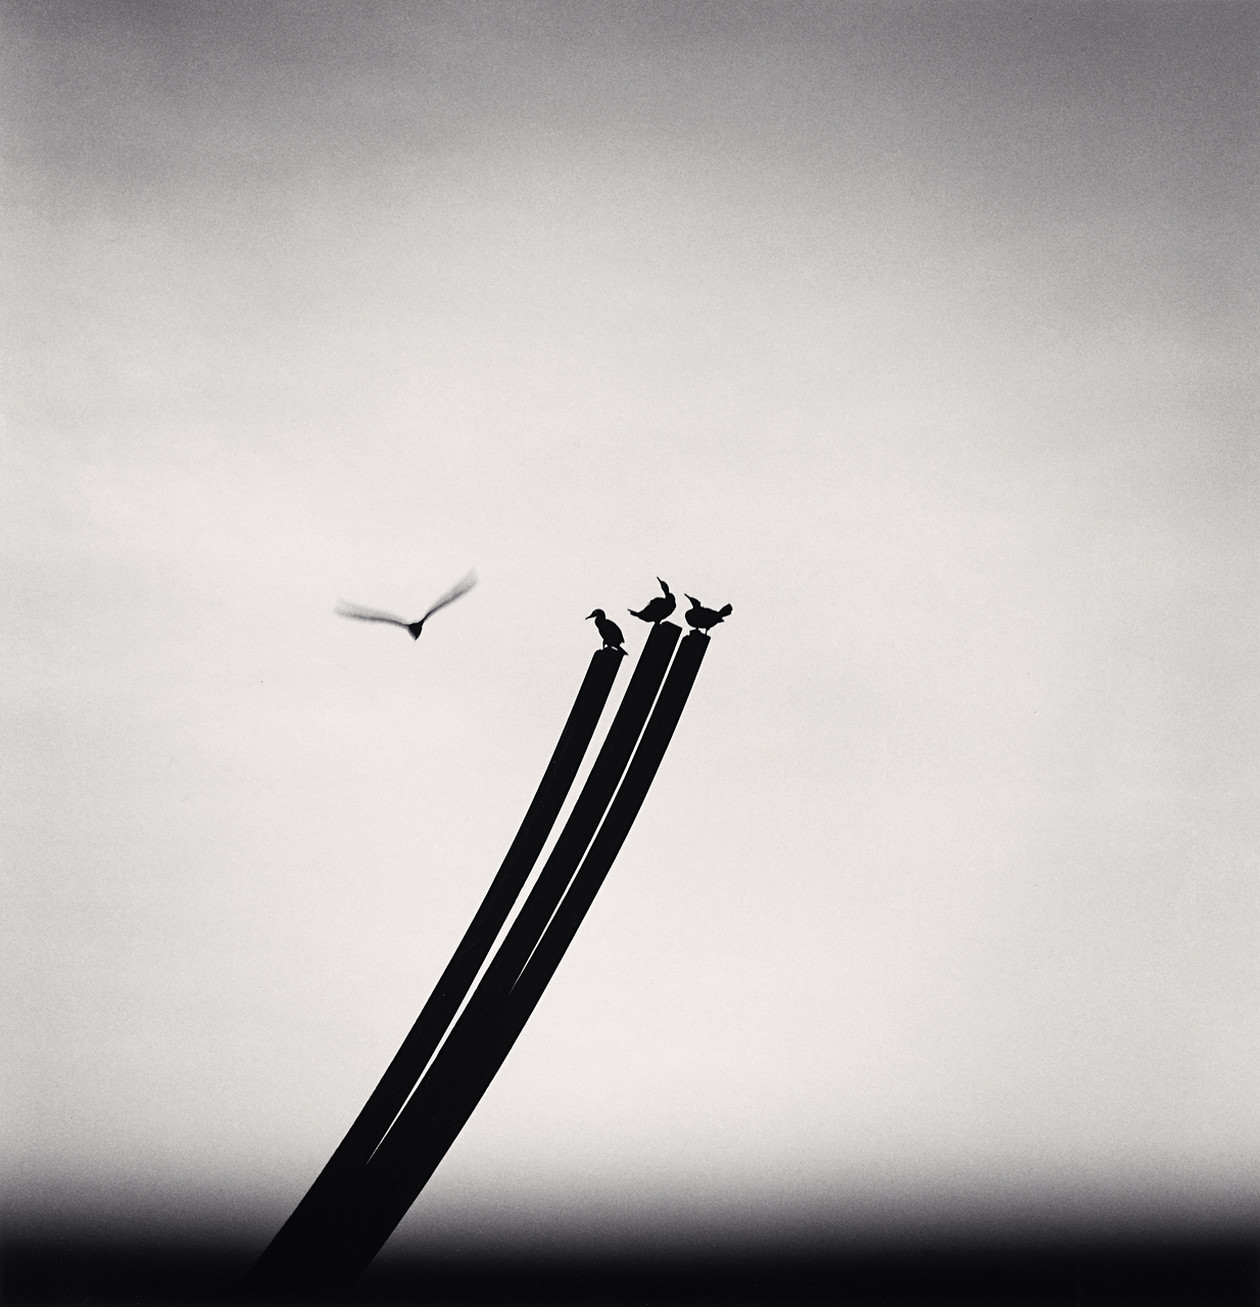 Four Birds, St. Nazaire (2000) by Michael Kenna